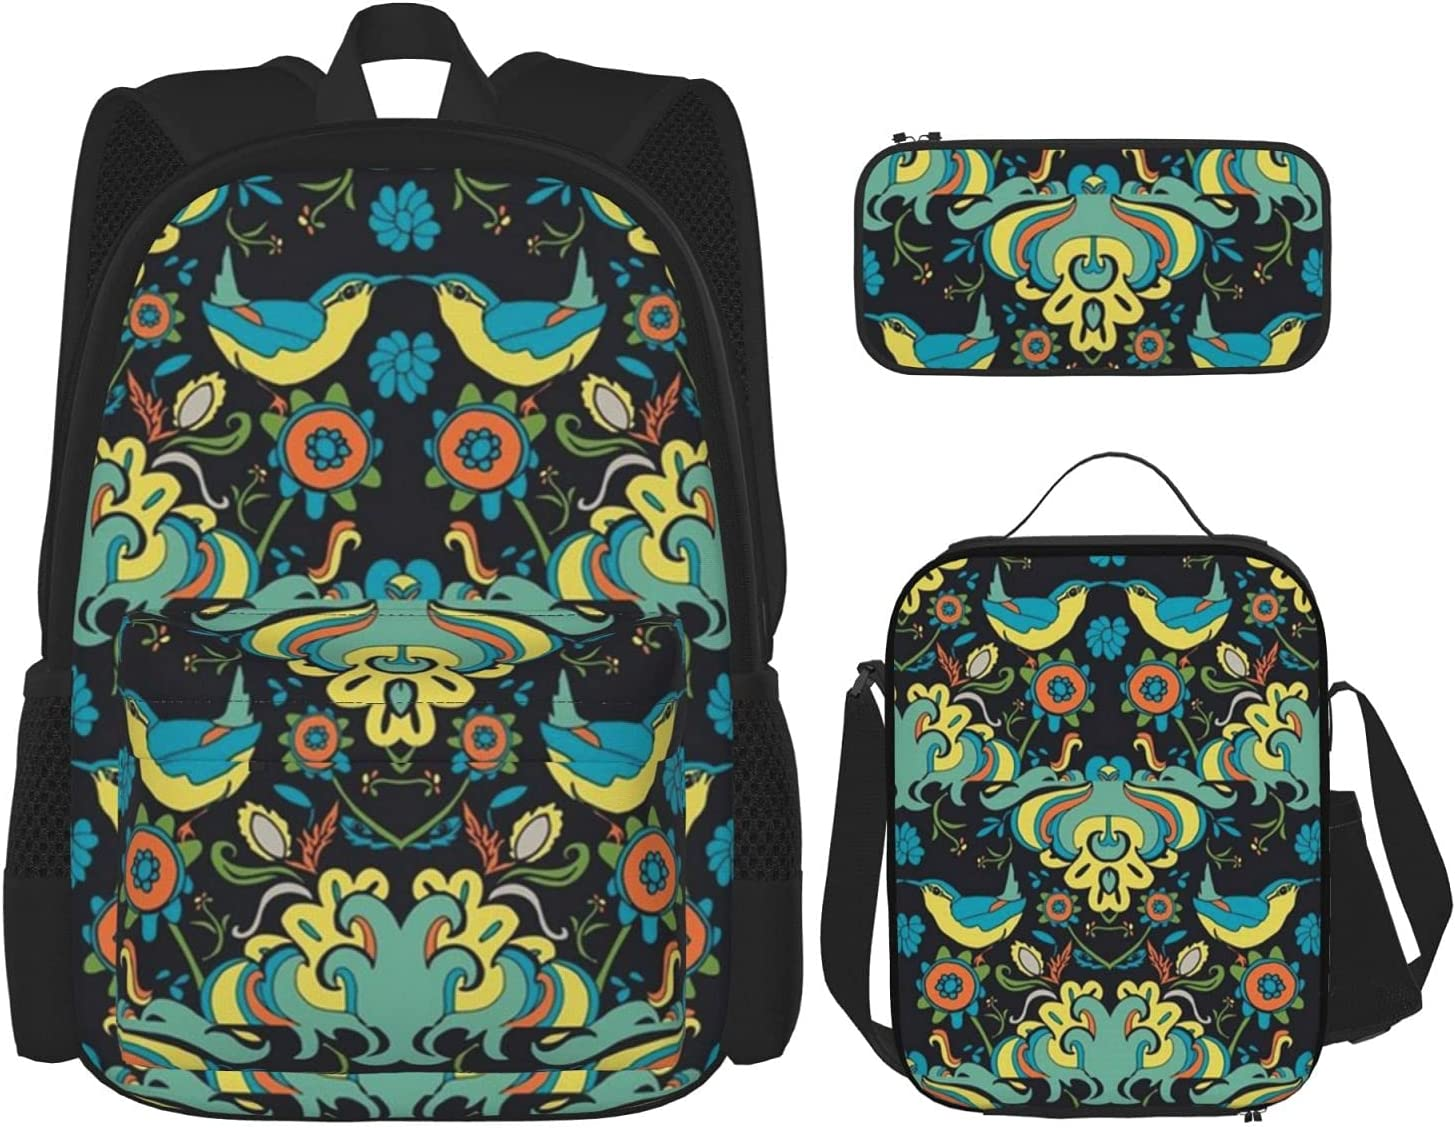 Backpack Bags Birds Garden On Washington Mall Black Lunch Pencil Bag low-pricing with Ca